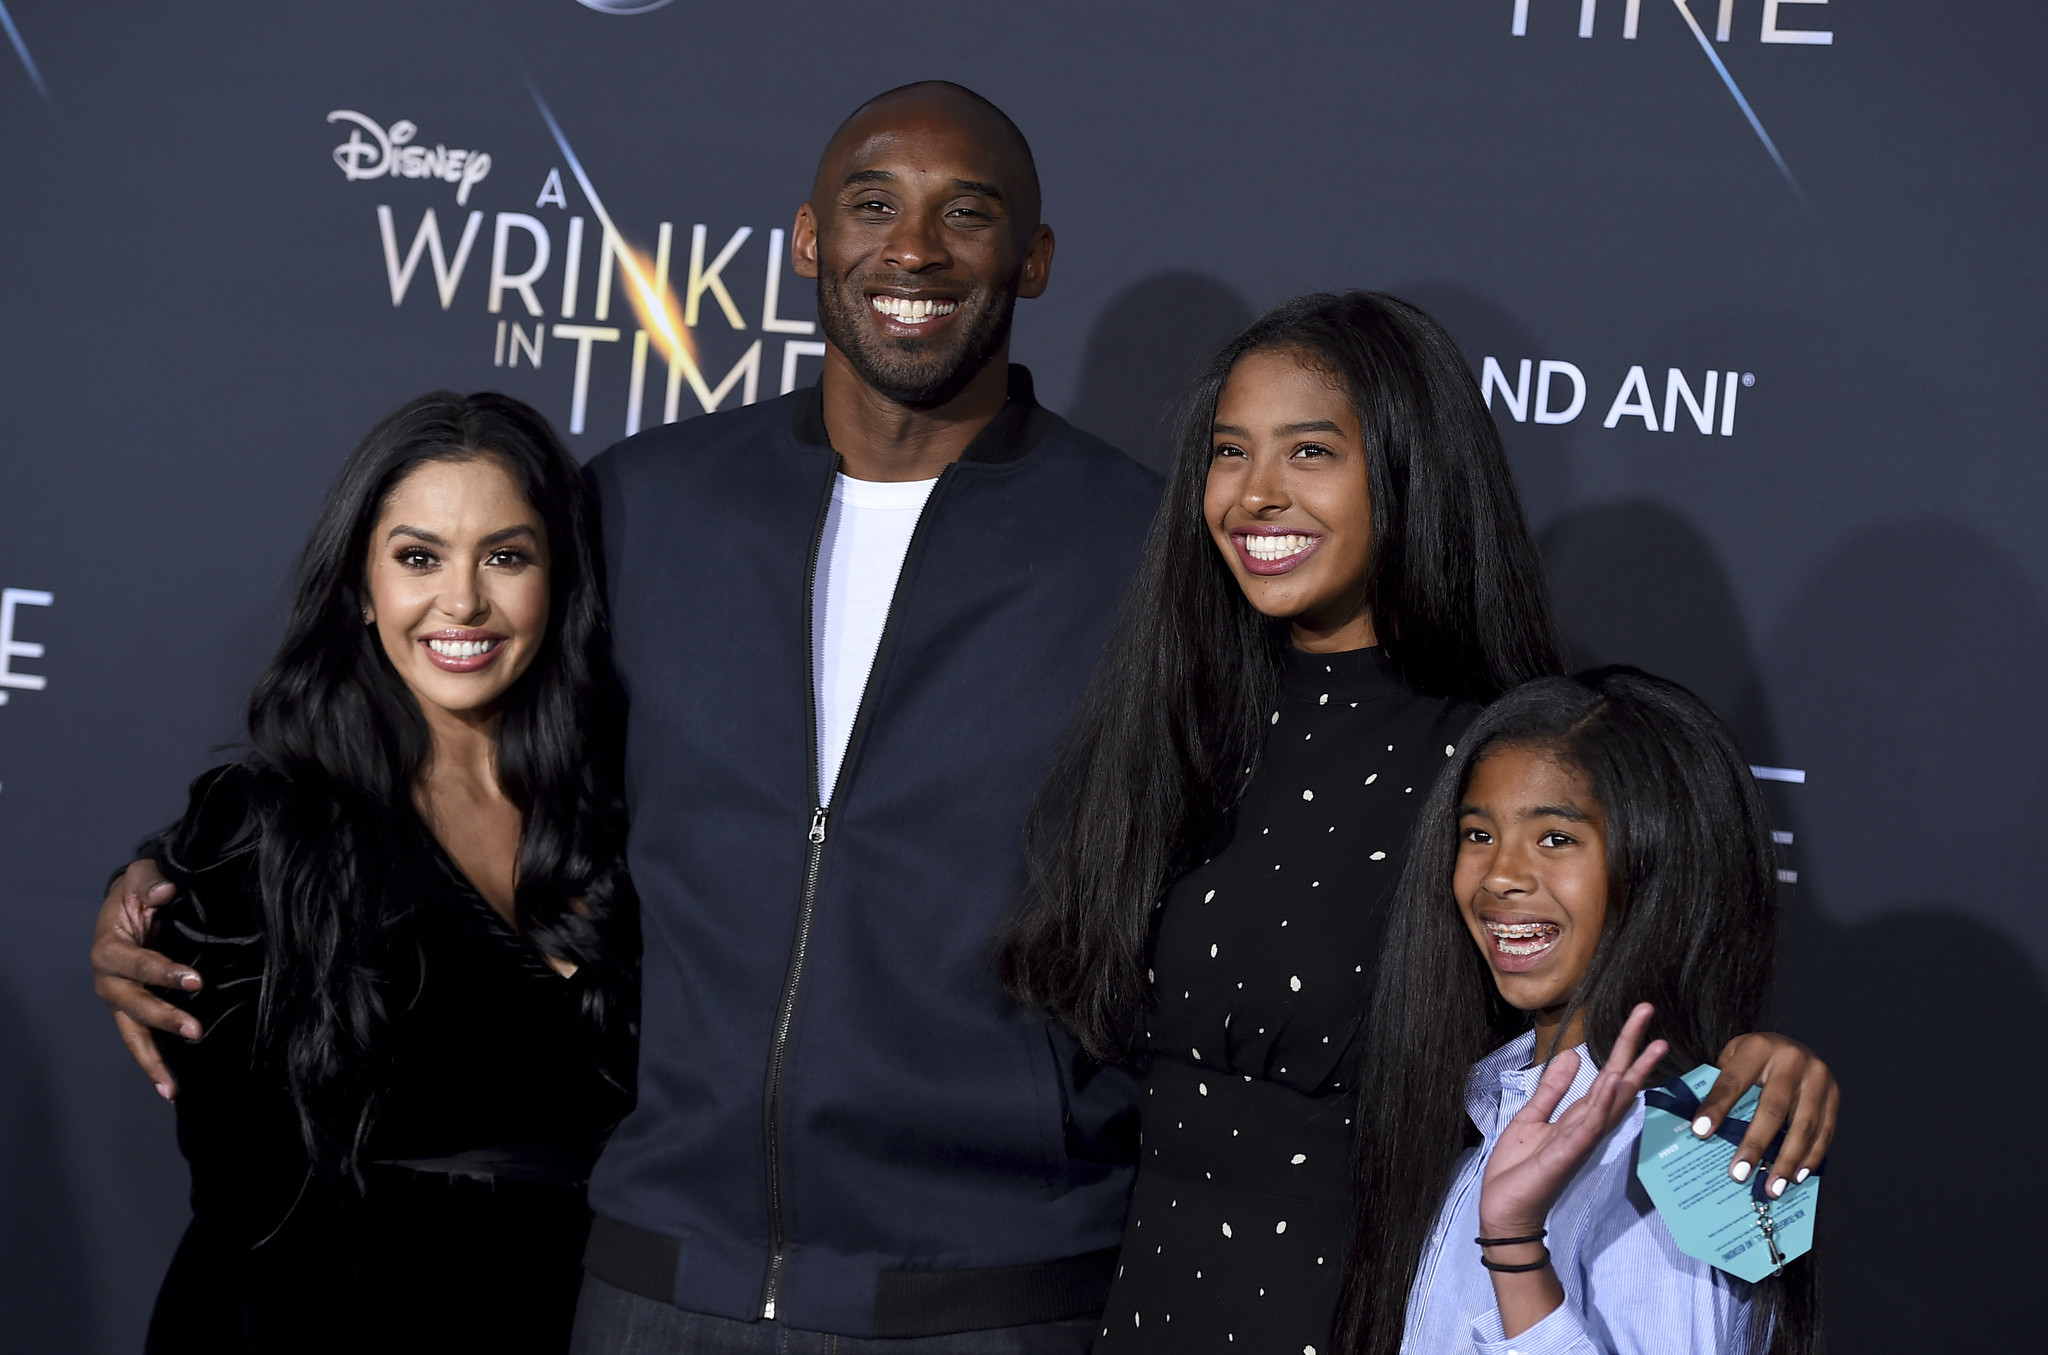 Kobe Bryant's oldest daughter takes photo in front of mural honoring NBA icon and sister Gianna